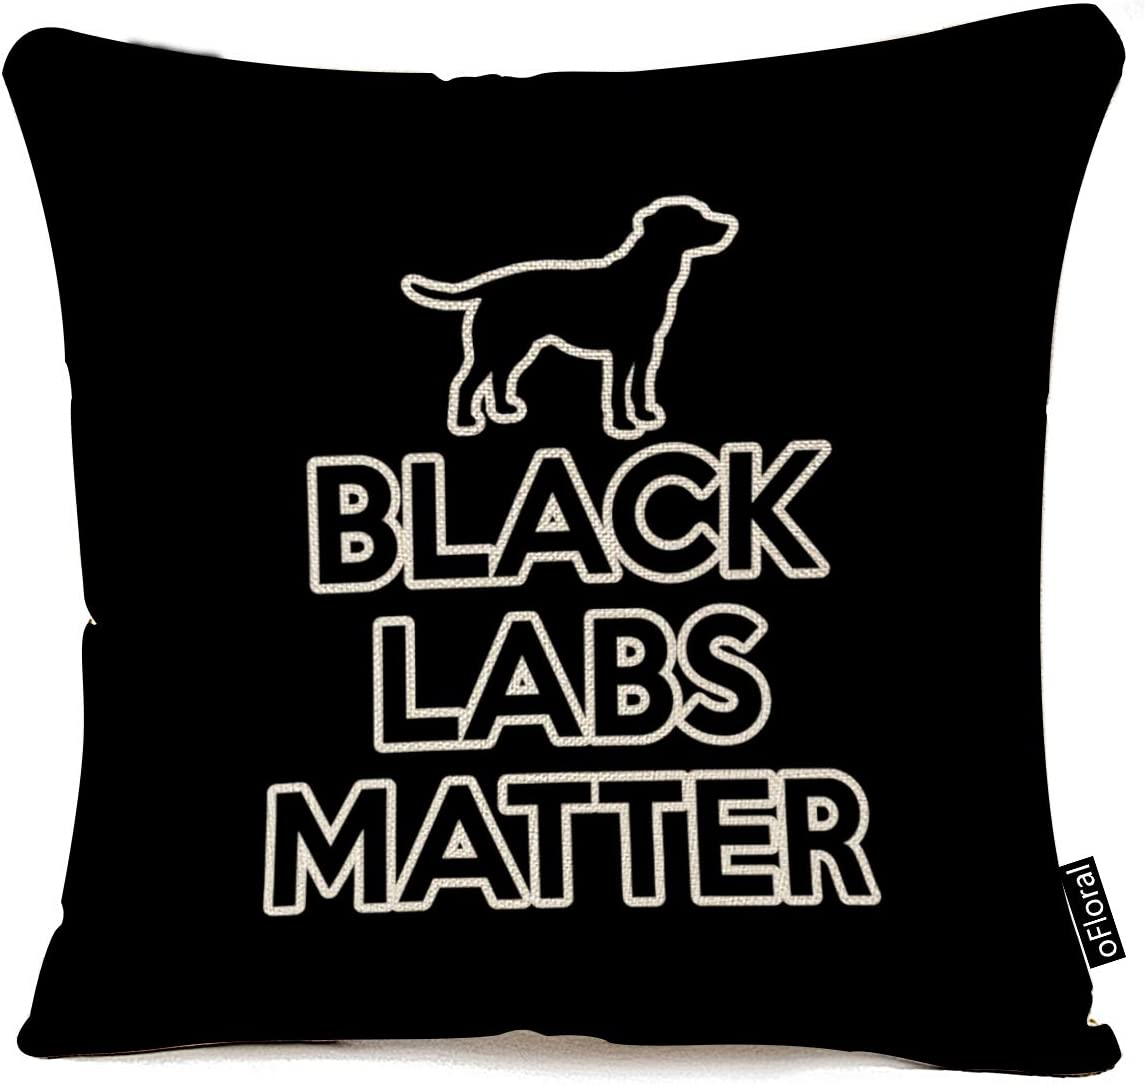 oFloral Throw Pillow Quality inspection Case Black Labs Decorative Co Tampa Mall Matter